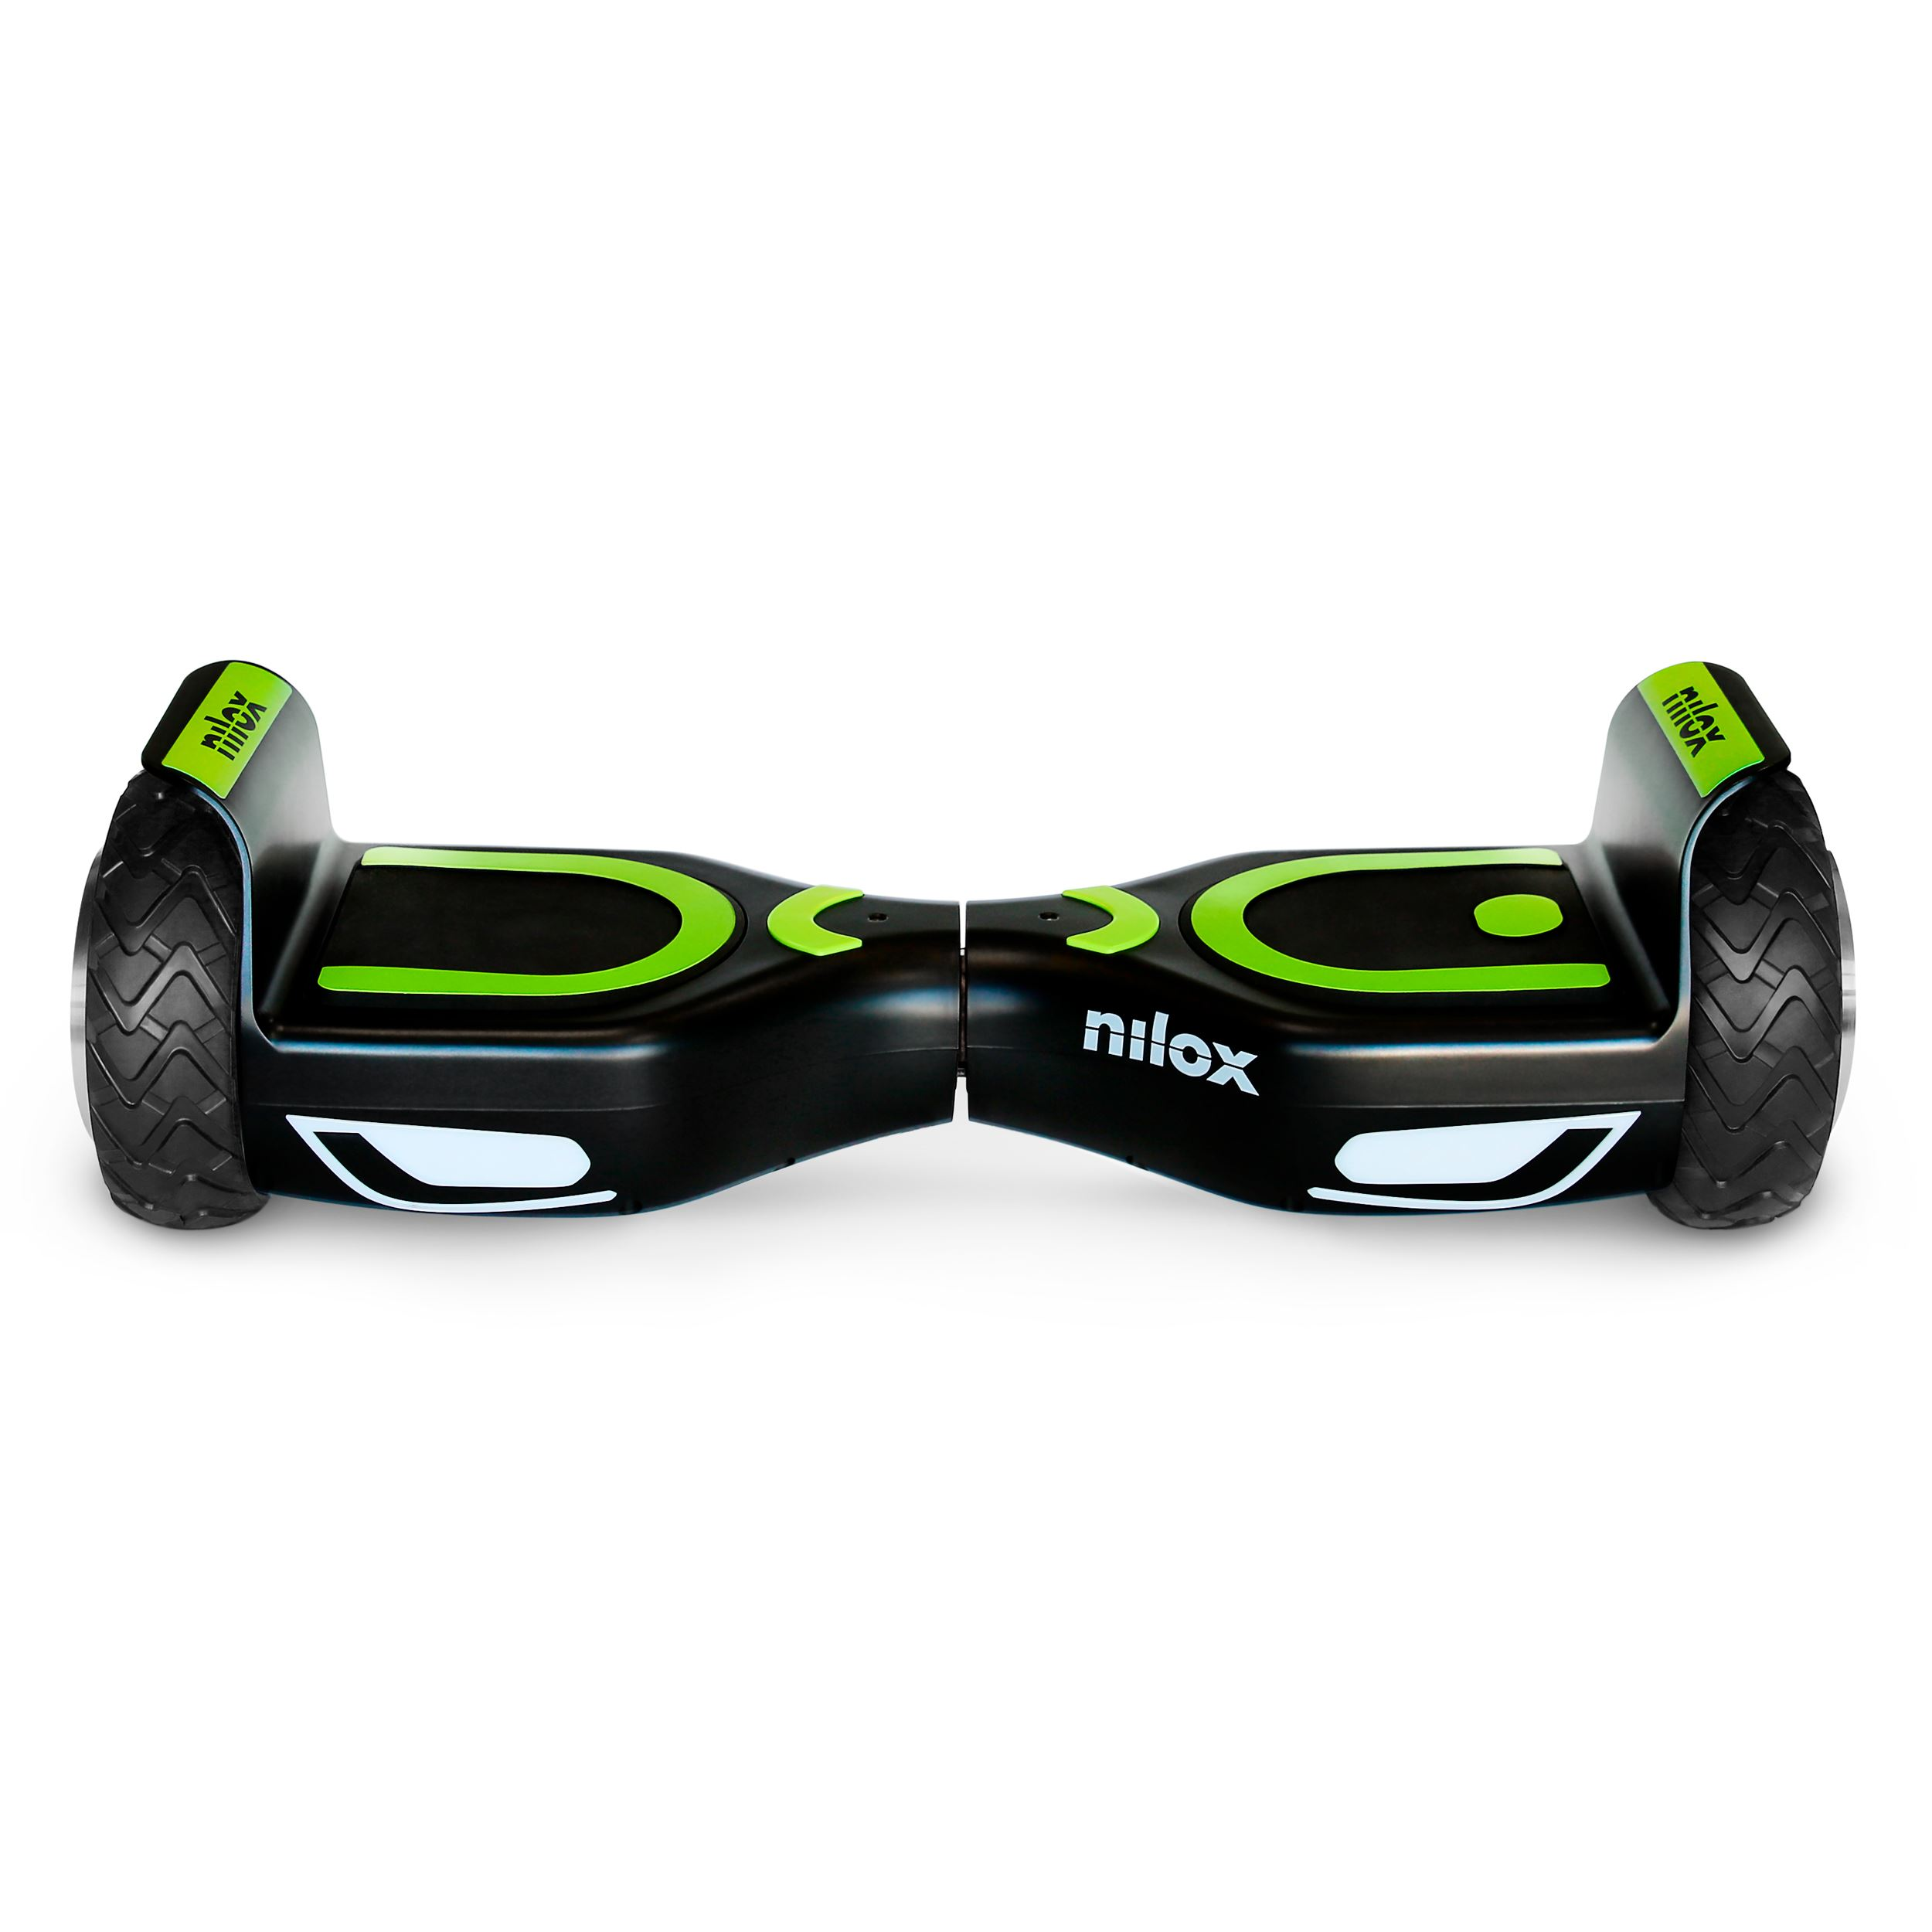 doc-2-hoverboard-black-30nxbk65nwn01-505120-hd.jpg